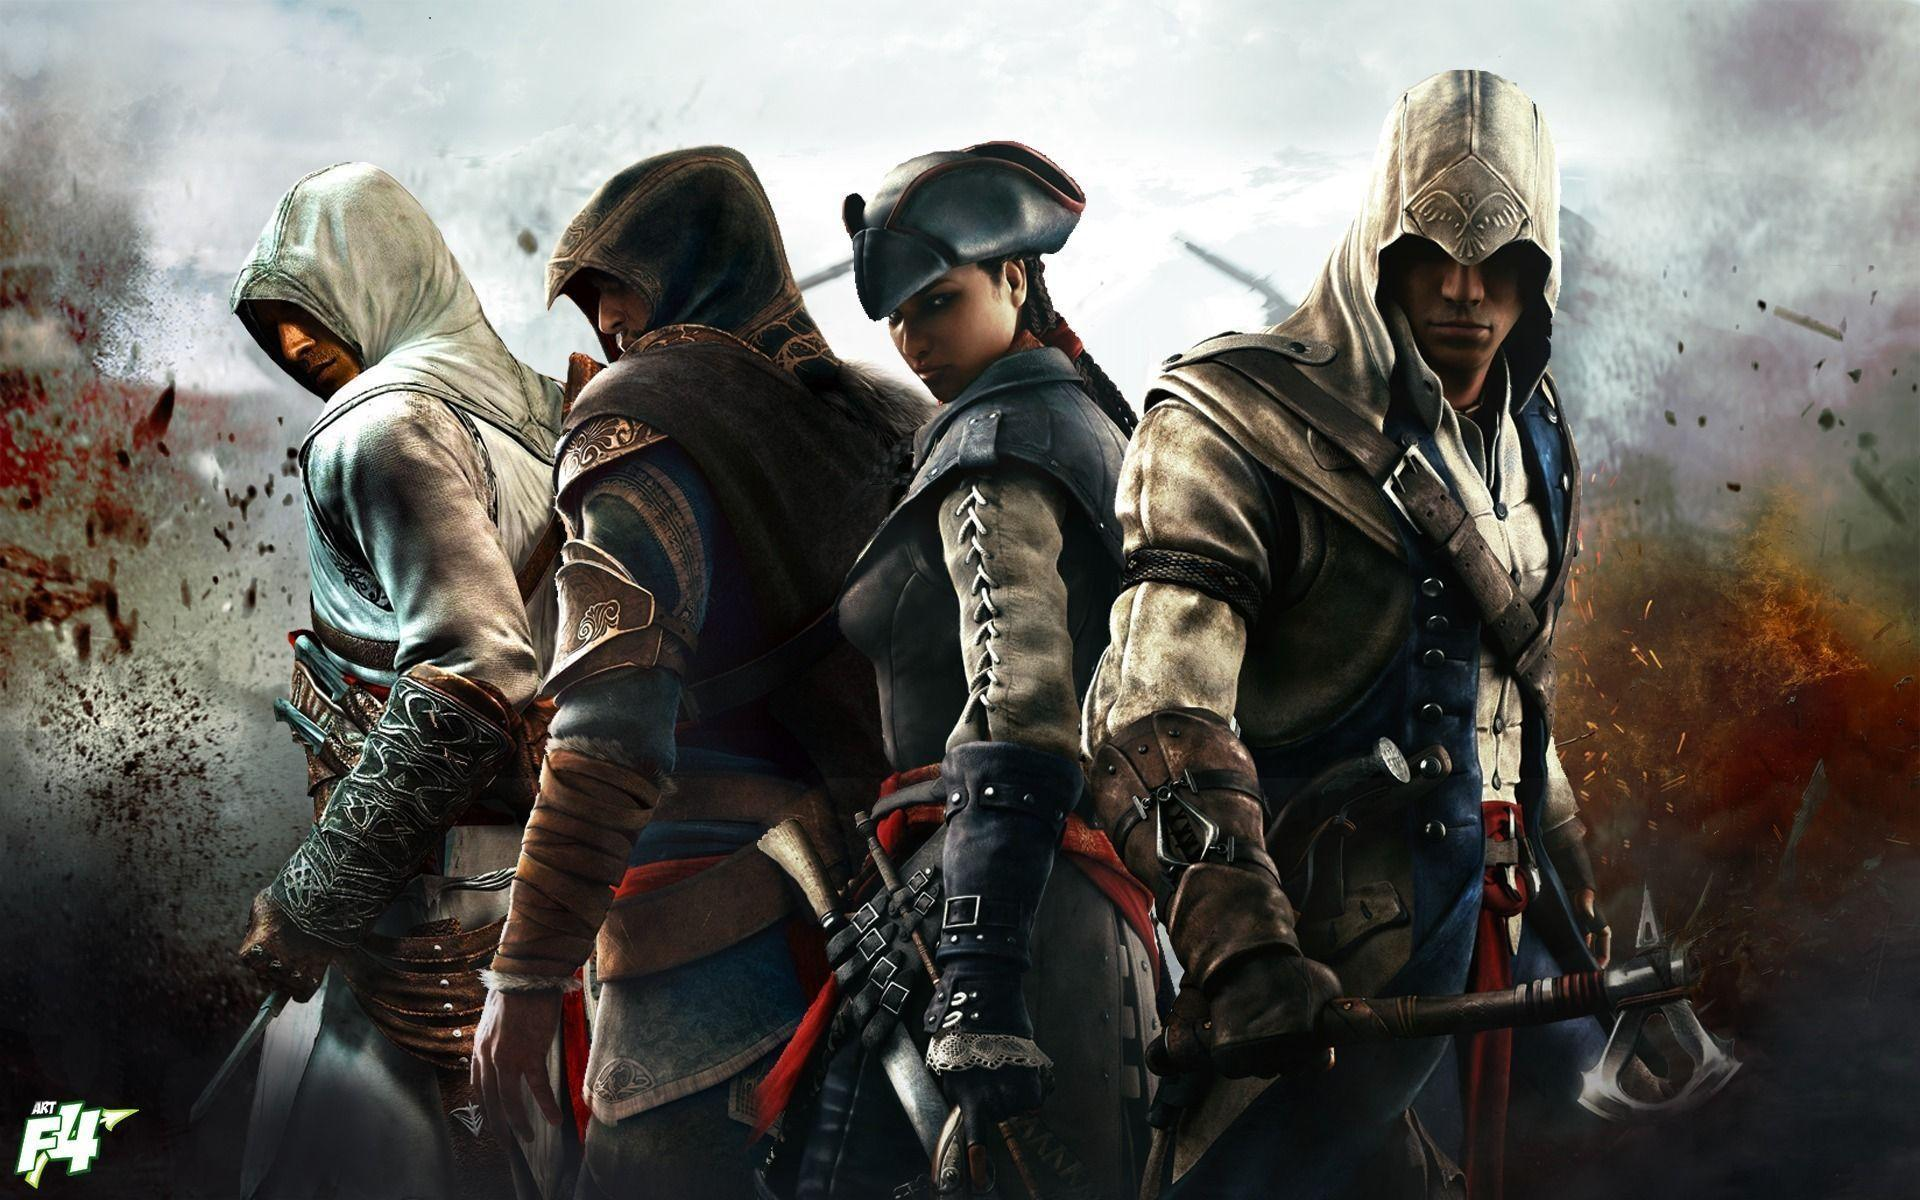 Download Assassin&Creed III Characters